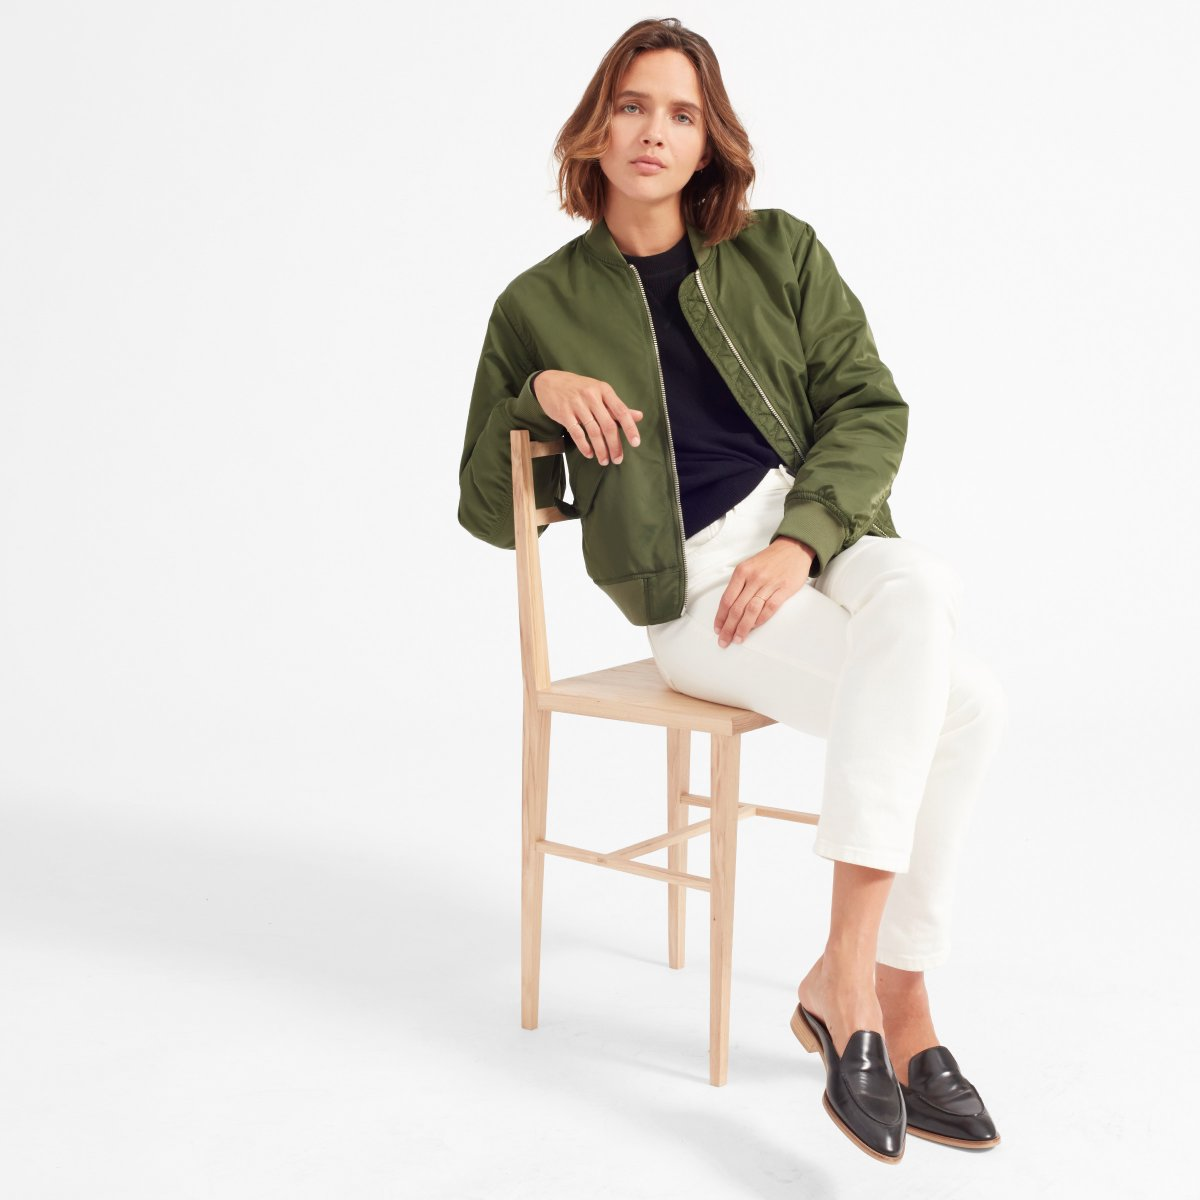 Everlane  - The Bomber Jacket $80